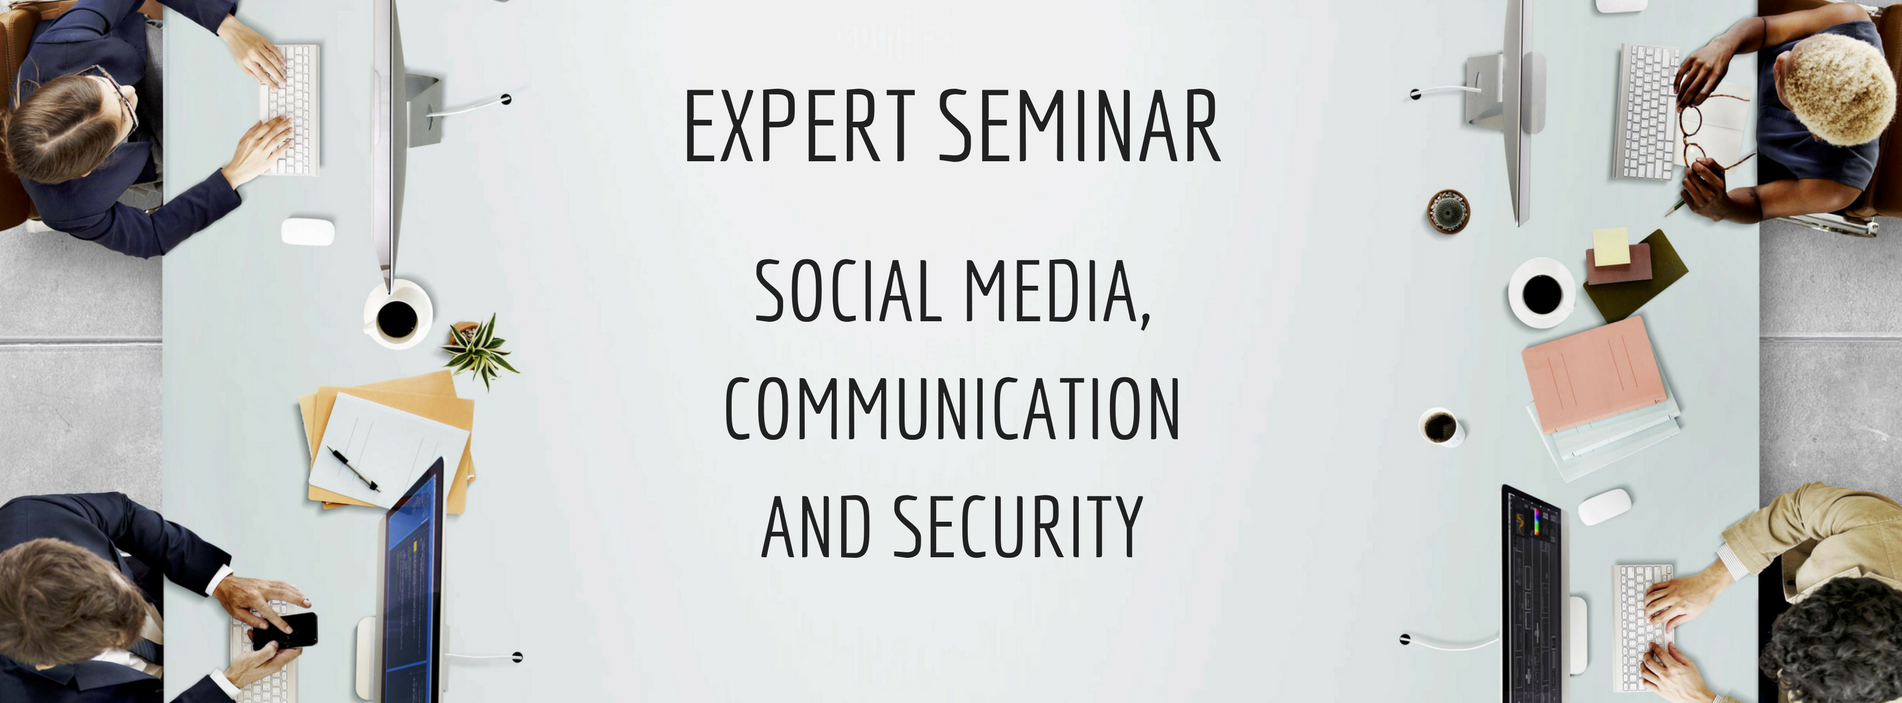 Expert Seminar: Social Media, Communication and Security